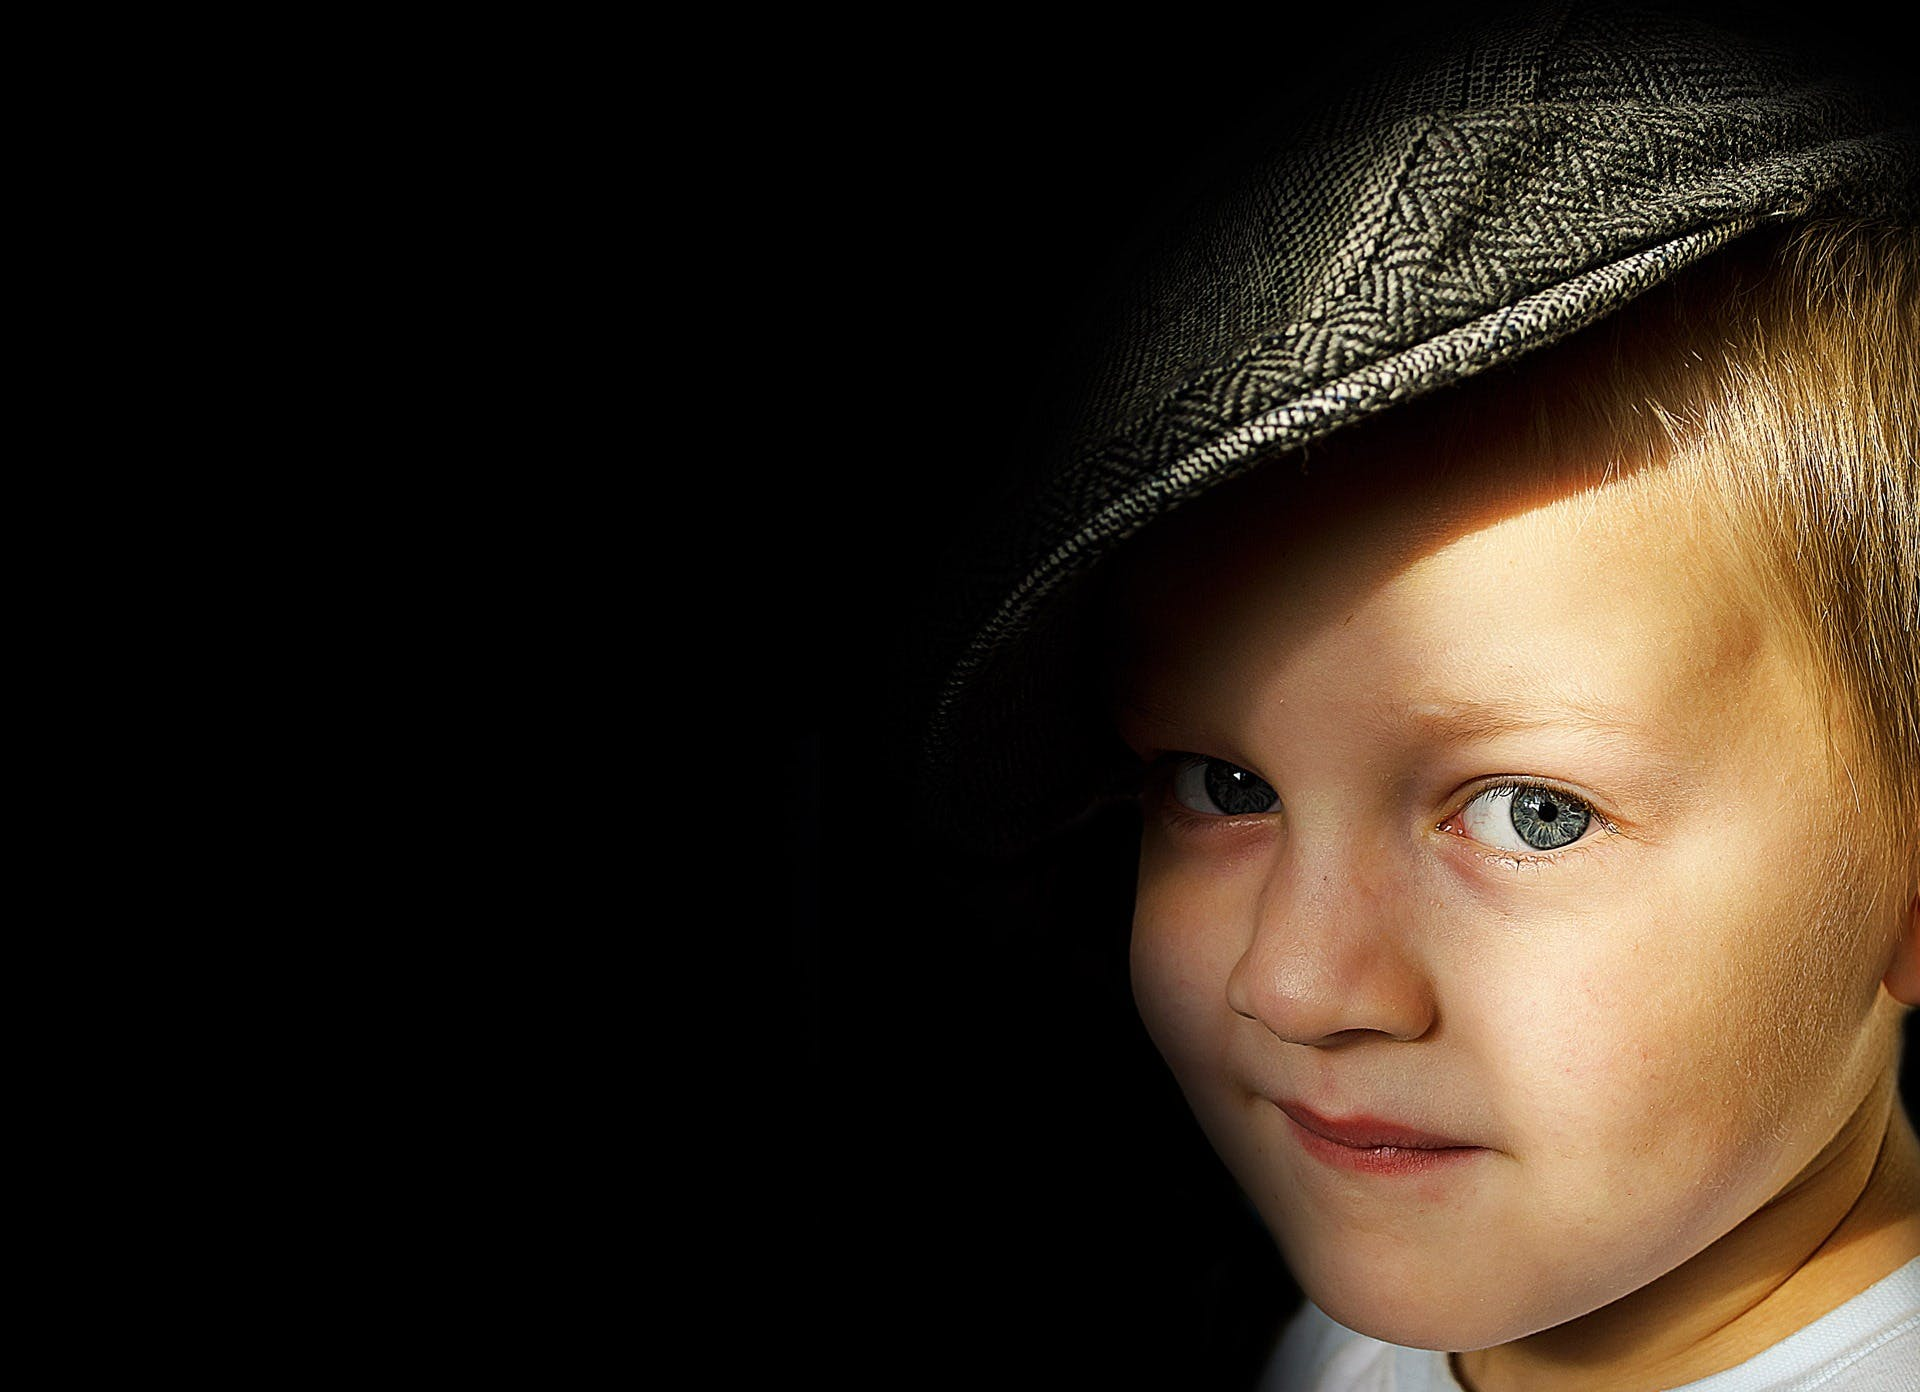 Boy Wearing Herringbone Flat Cap